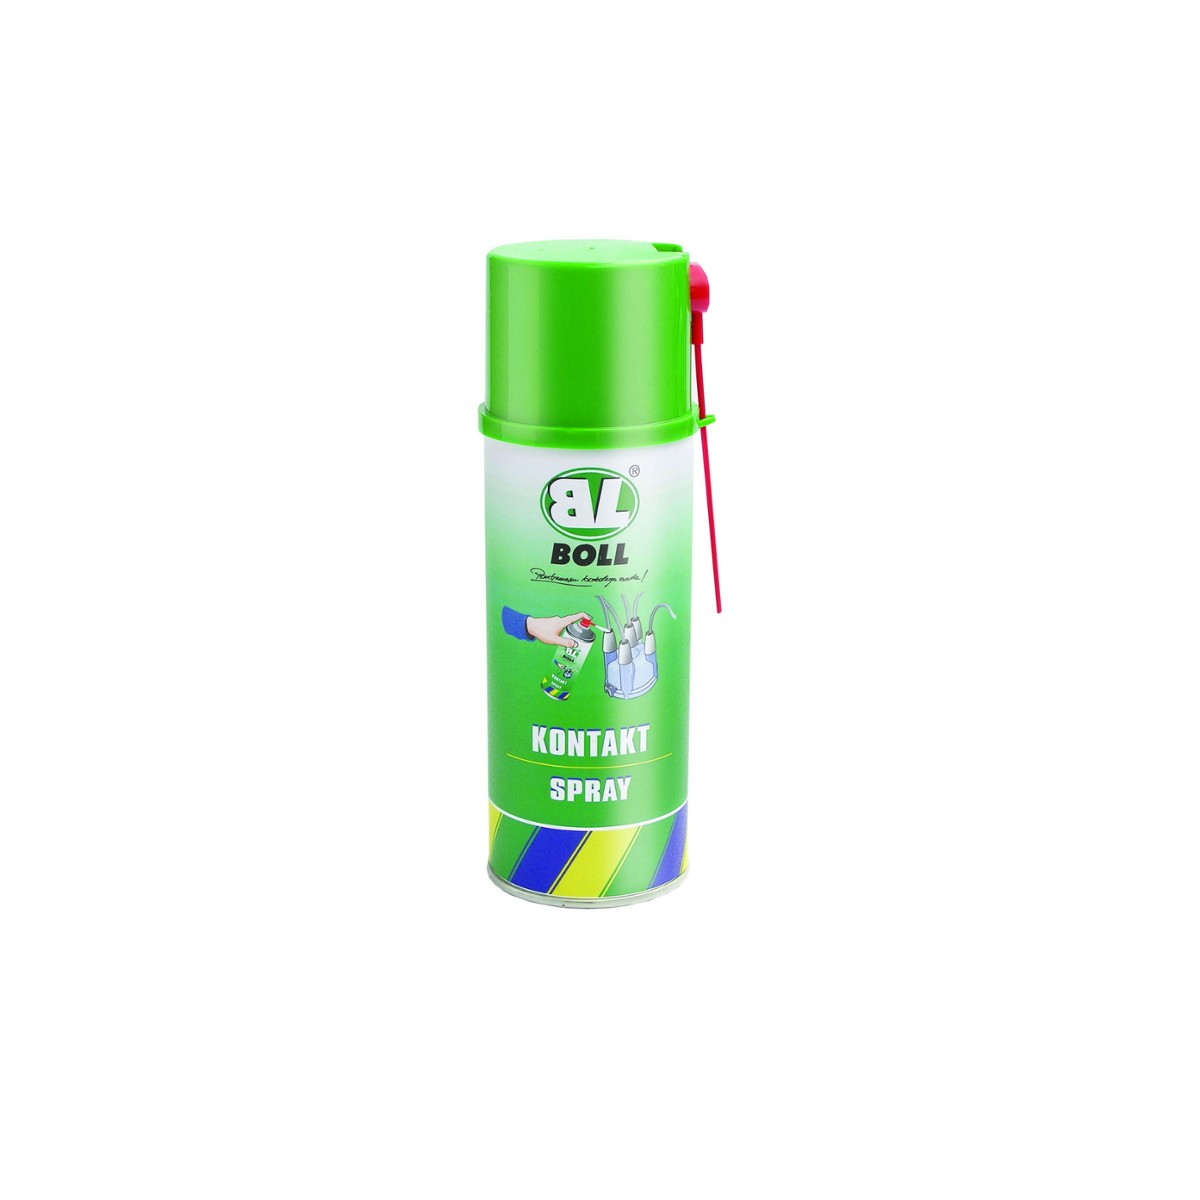 BOLL Kontakt - spray 400ml